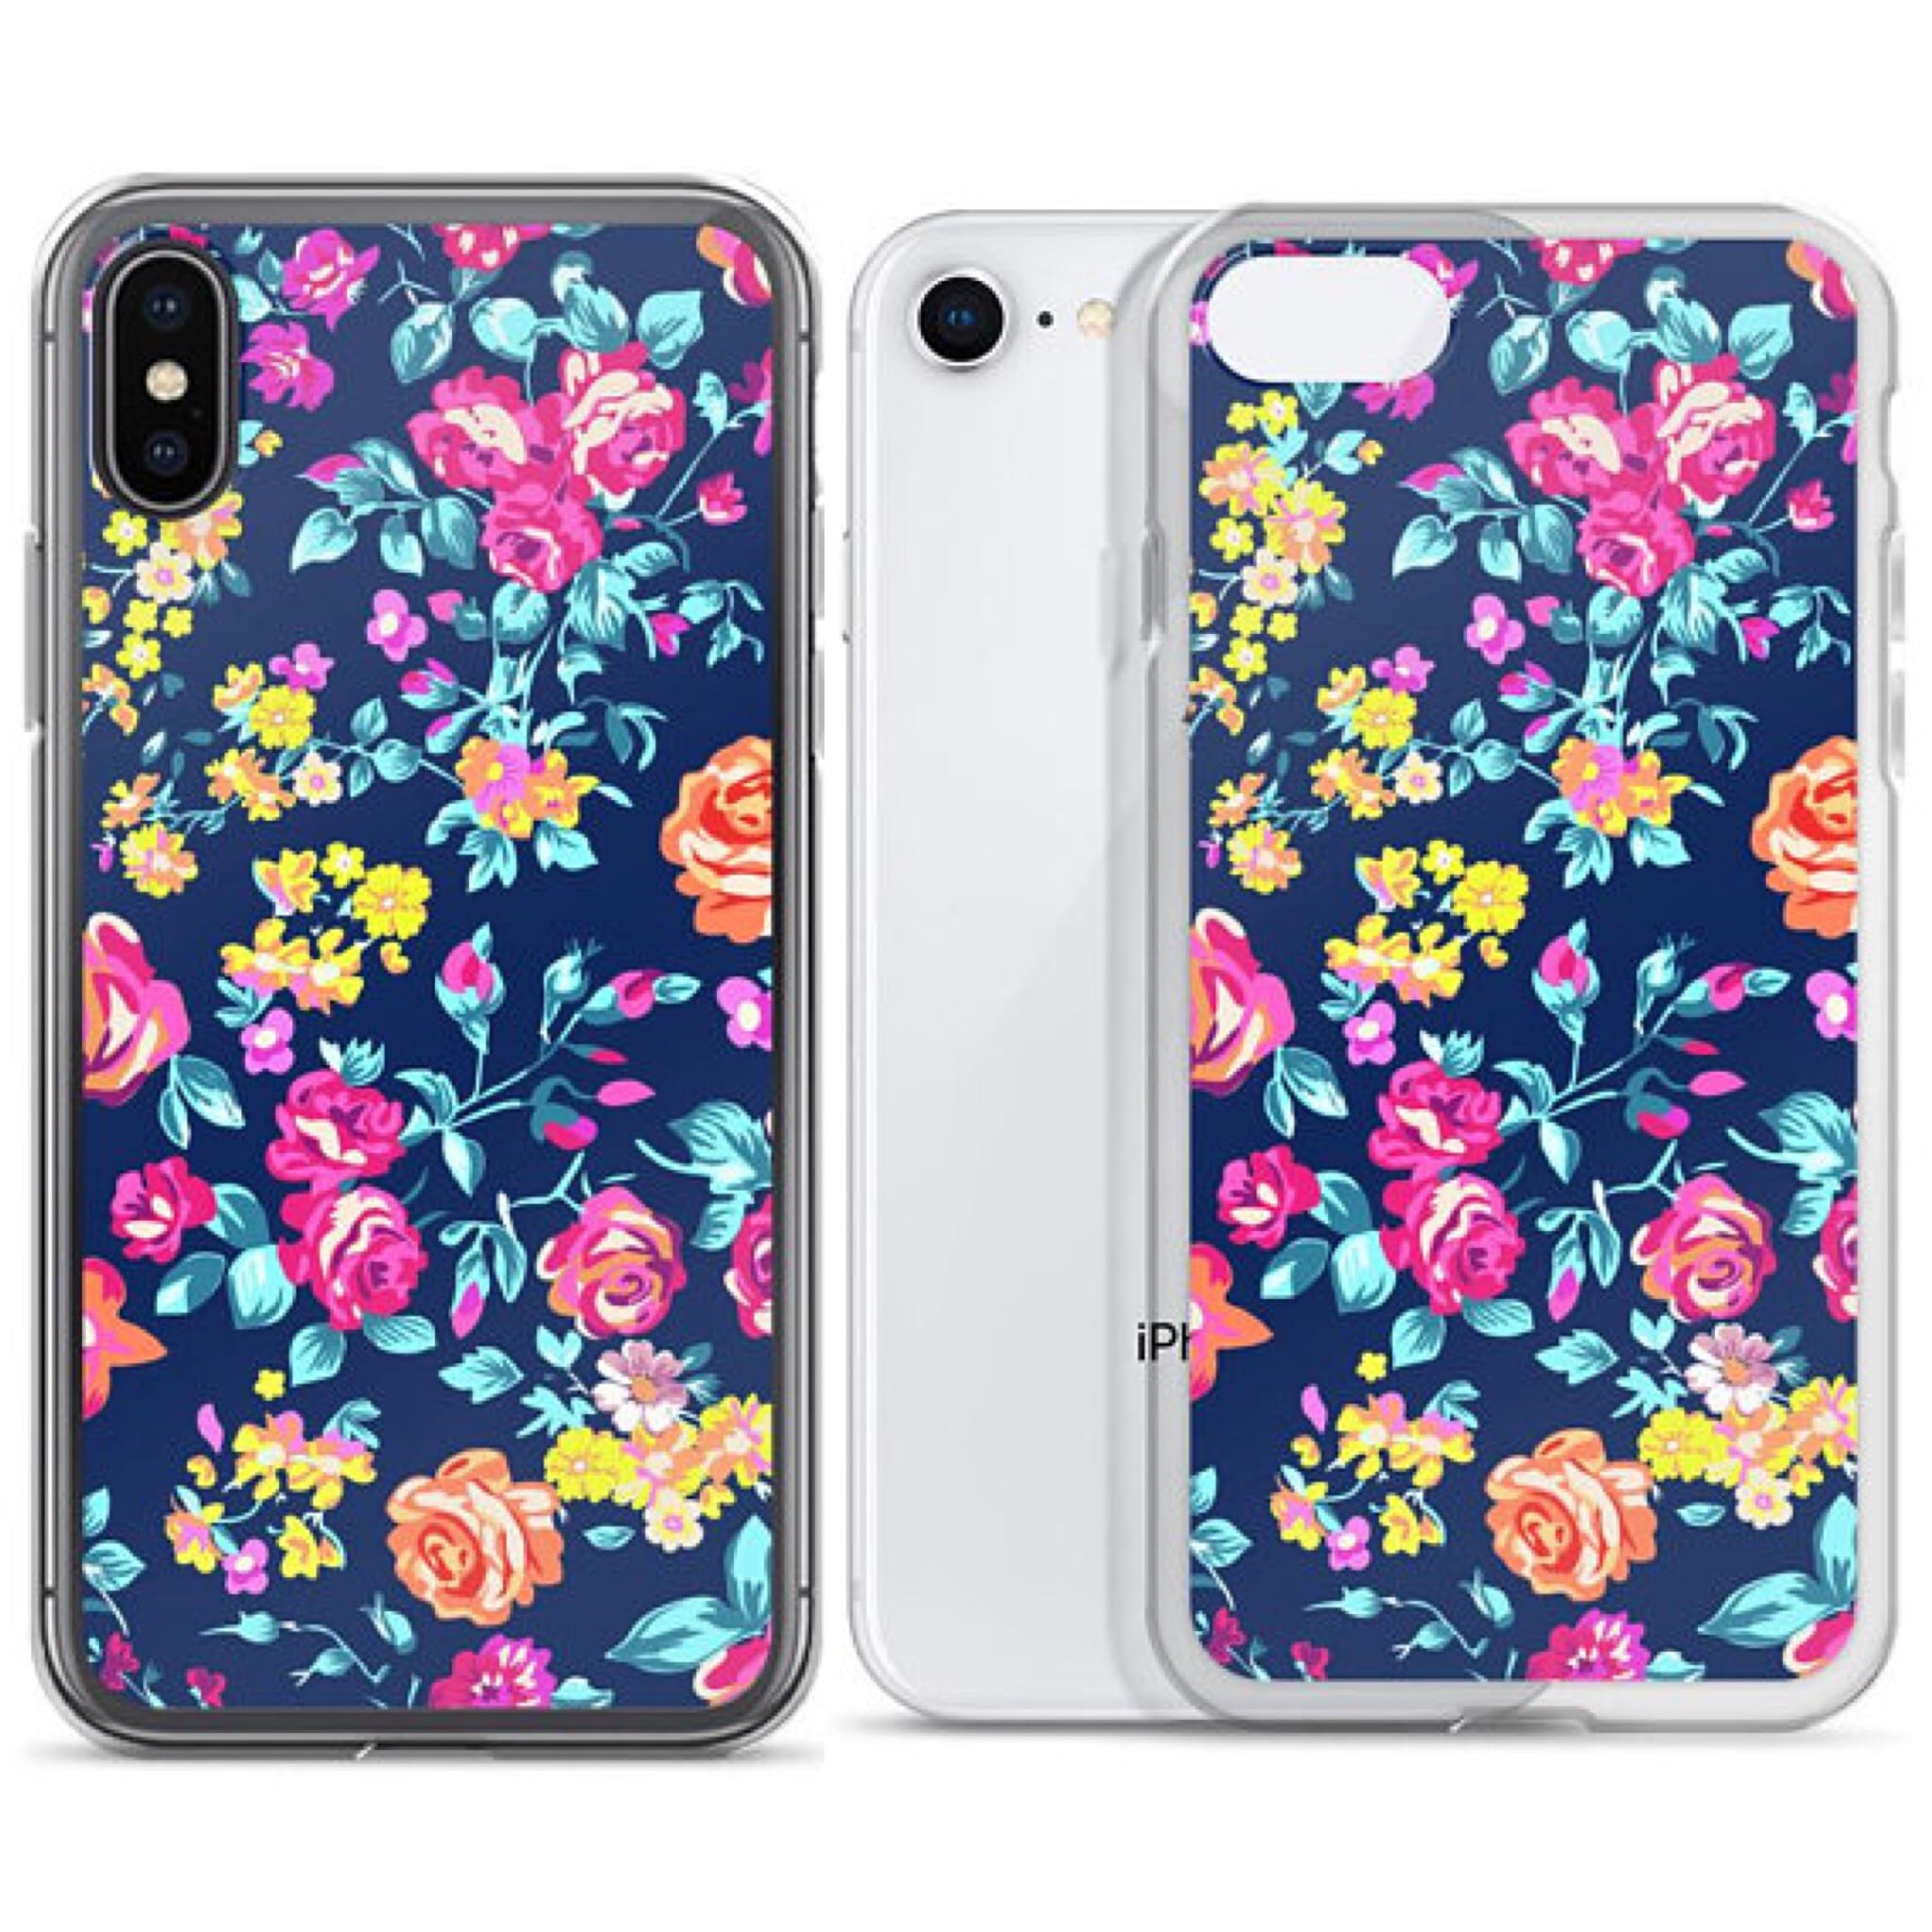 Gorgeous floral chaos iPhone X case, iPhone 8 plus case, iPhone 7 cases